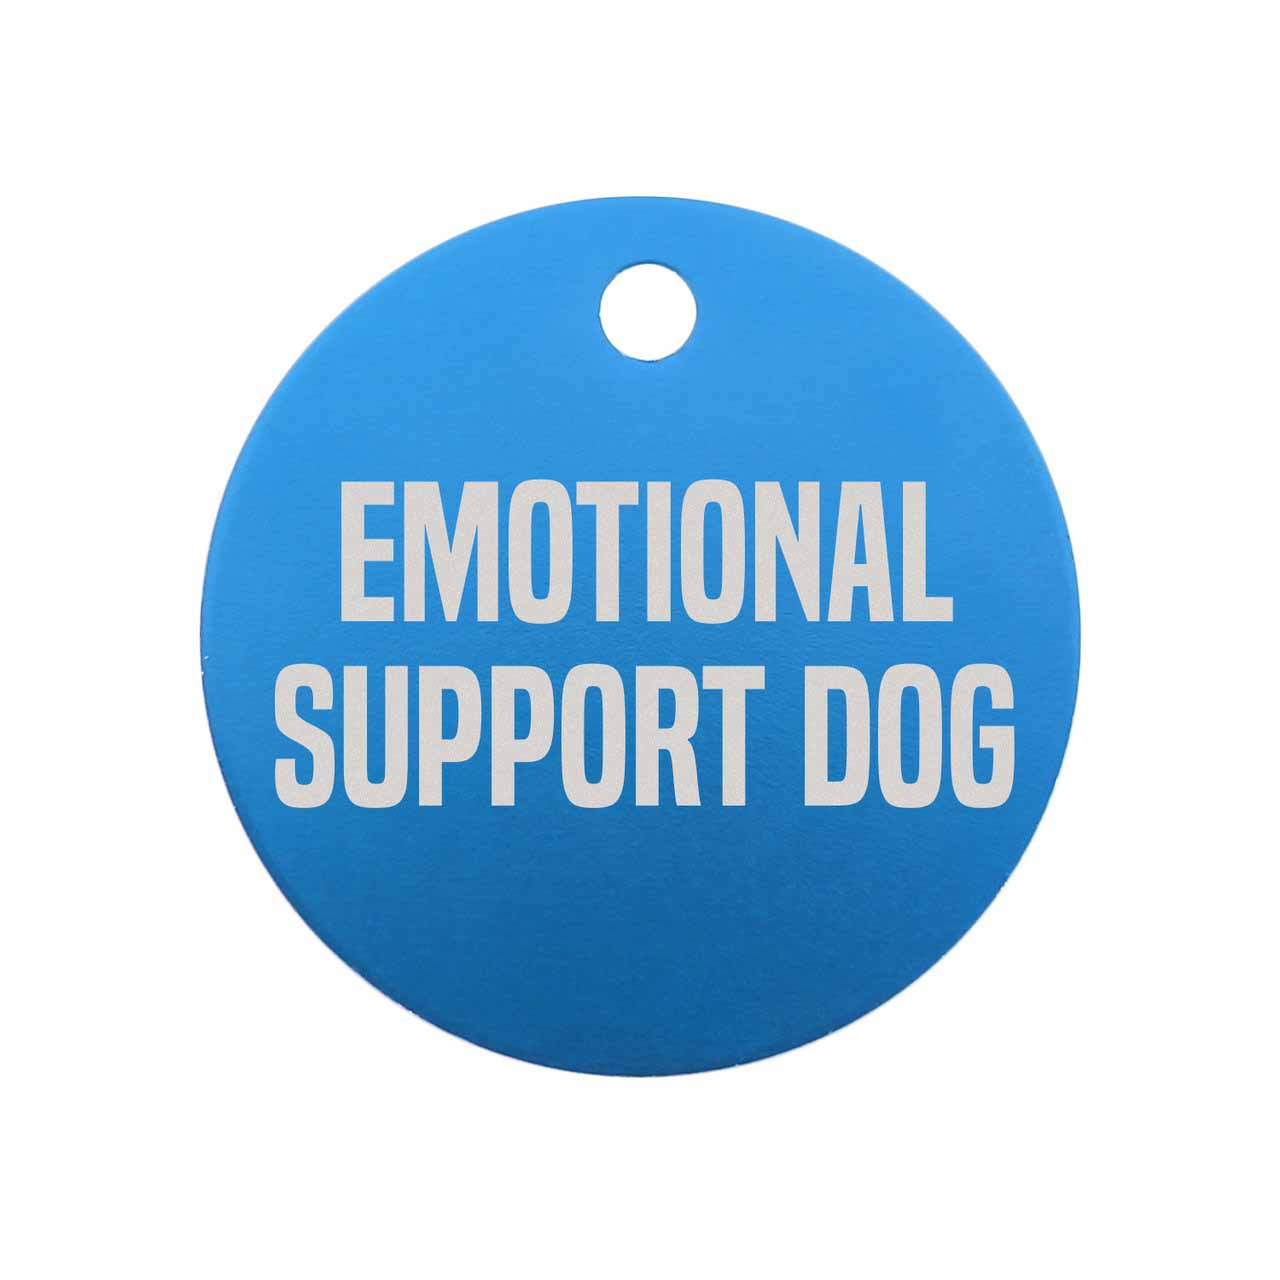 Emotional Support Dog Tag - Blue